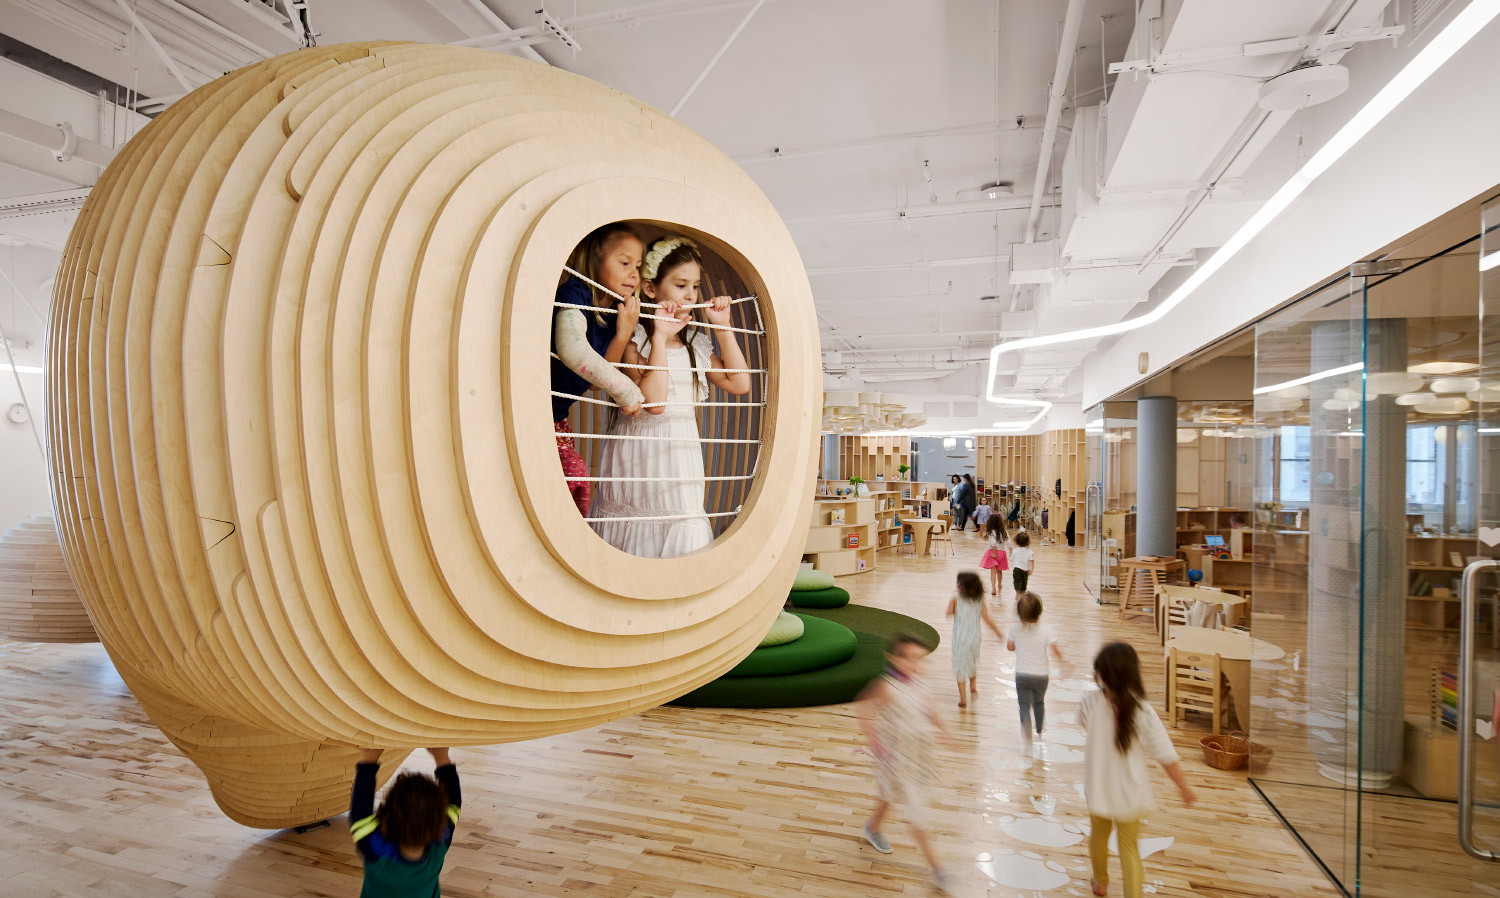 The BIG-designed WeGrow features a variety of occupiable vantage points for children to explore.